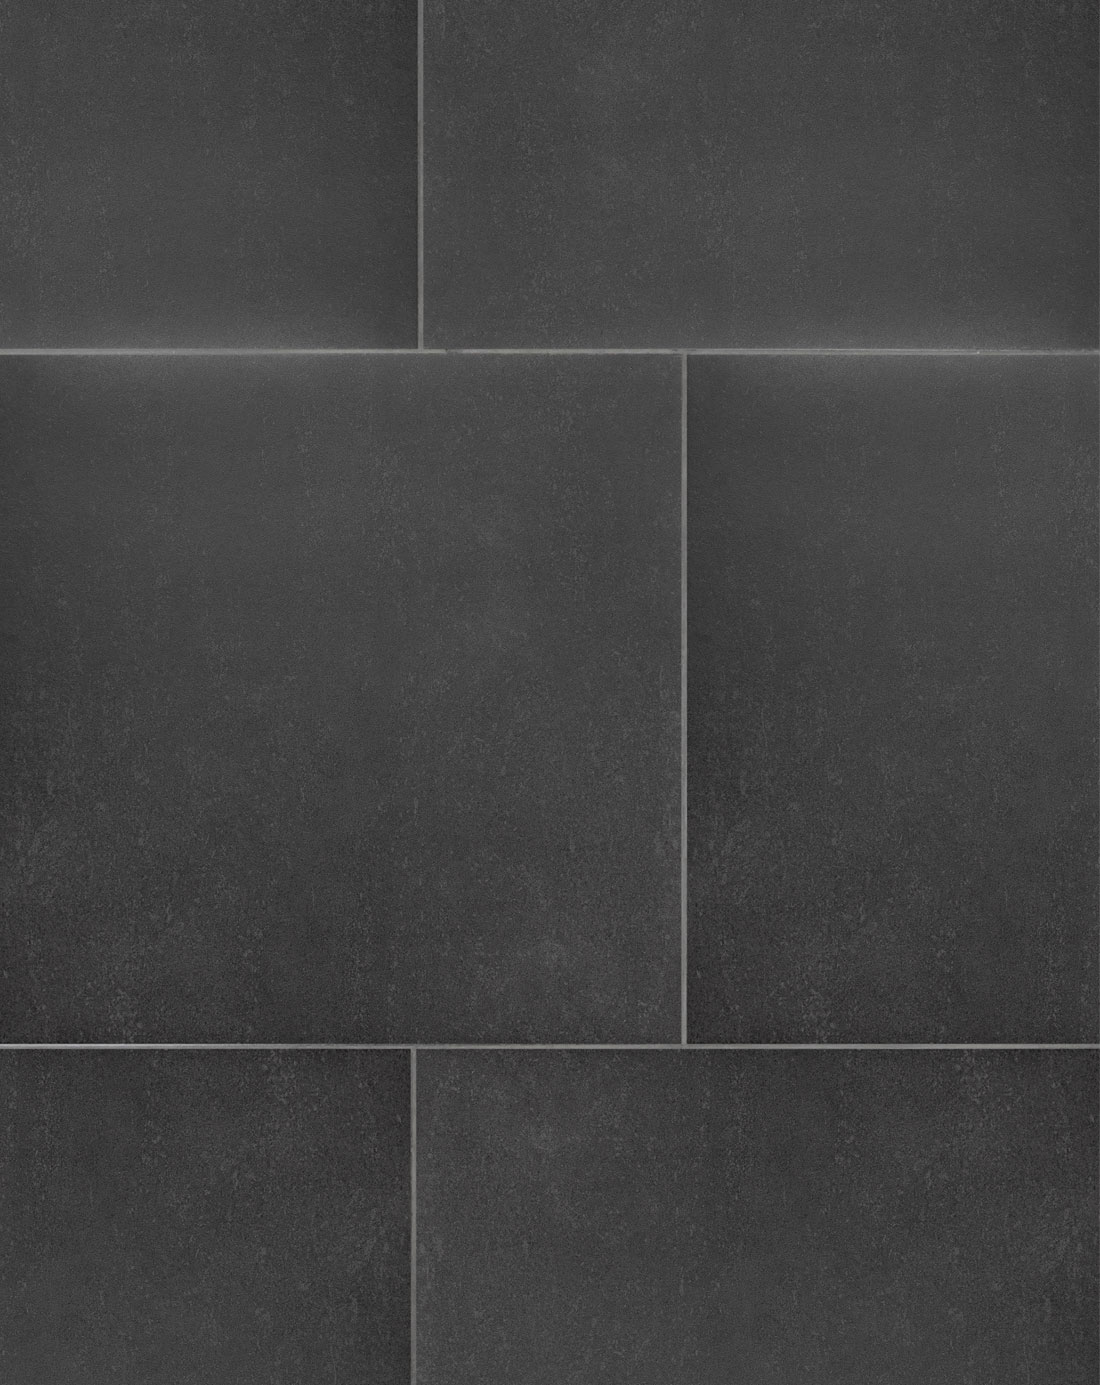 Unistone Black Kitchen Floor Tiles GBP2898m2 Free Tile Samples